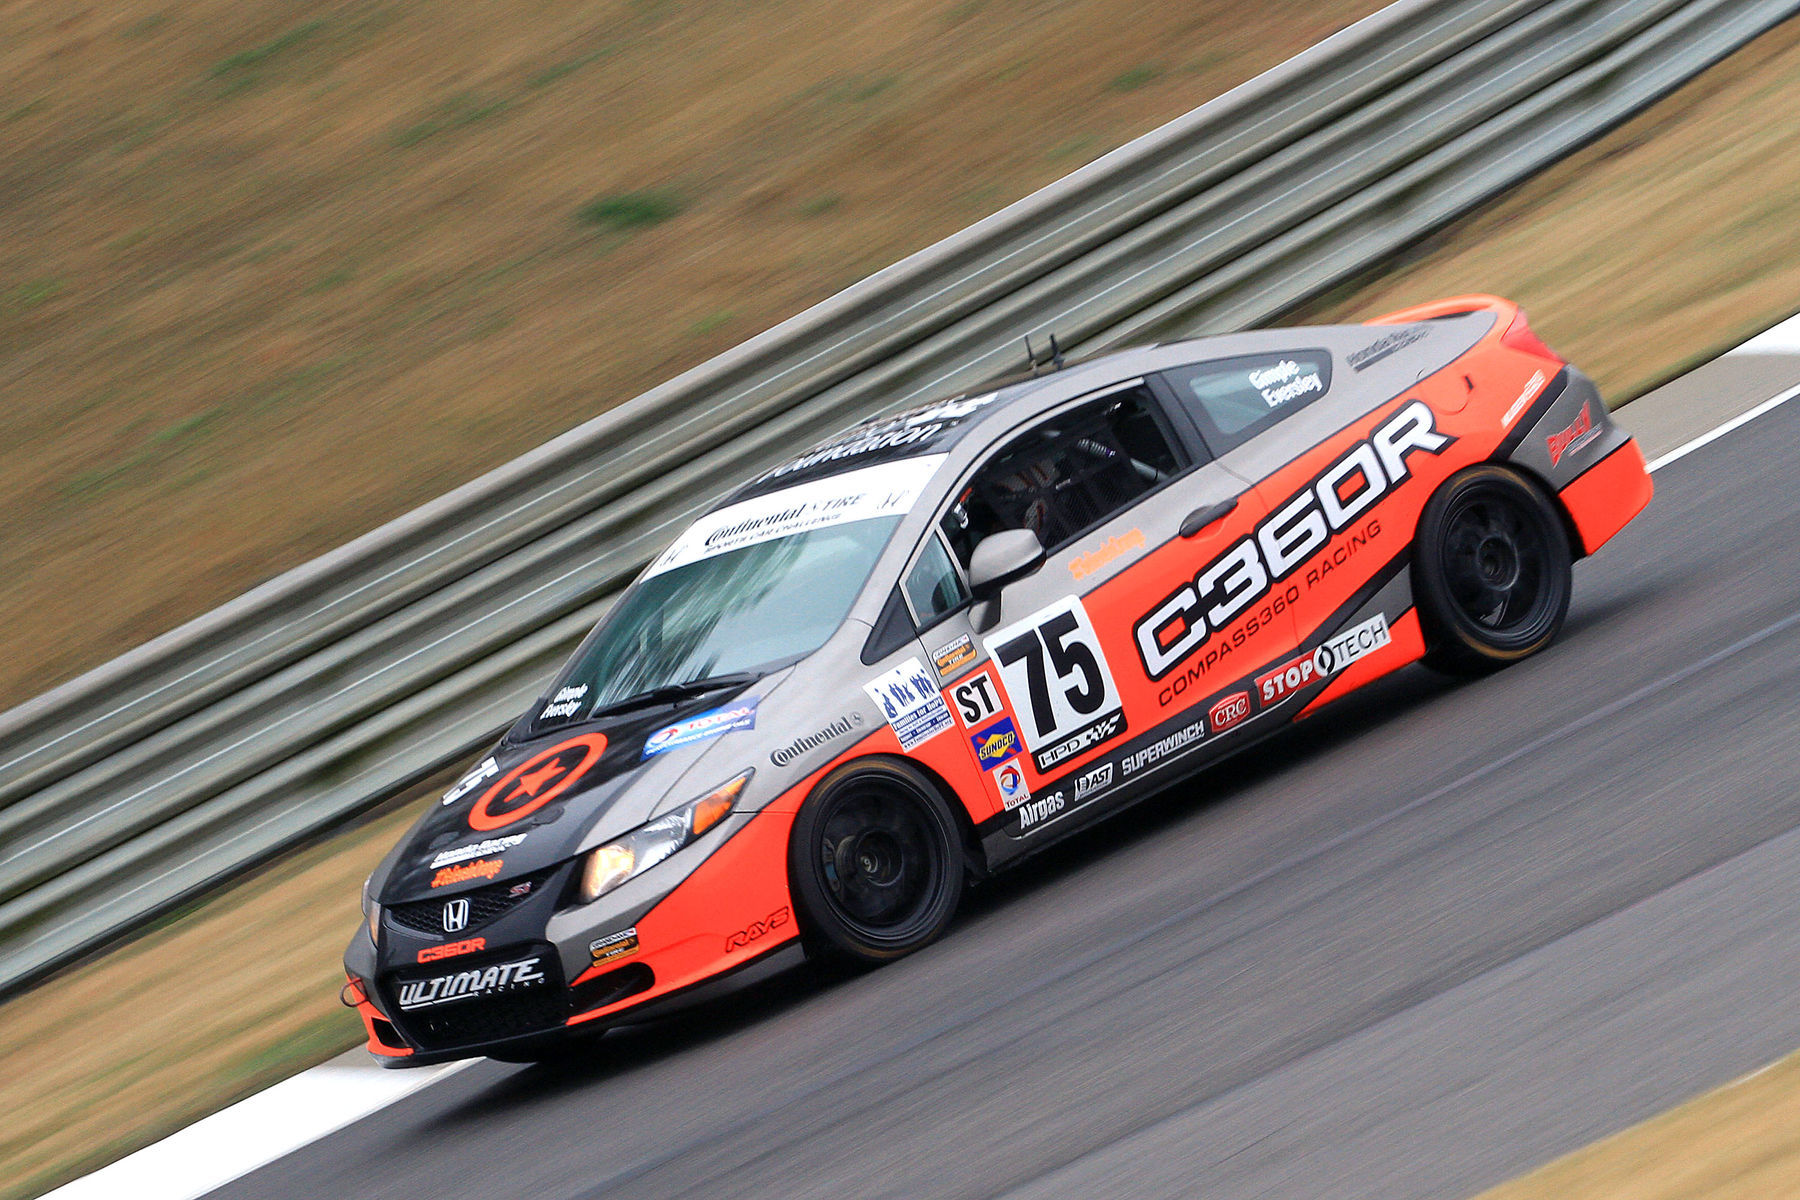   More laps for the history books at Barber Motorsports Park all racing on Continental Tires